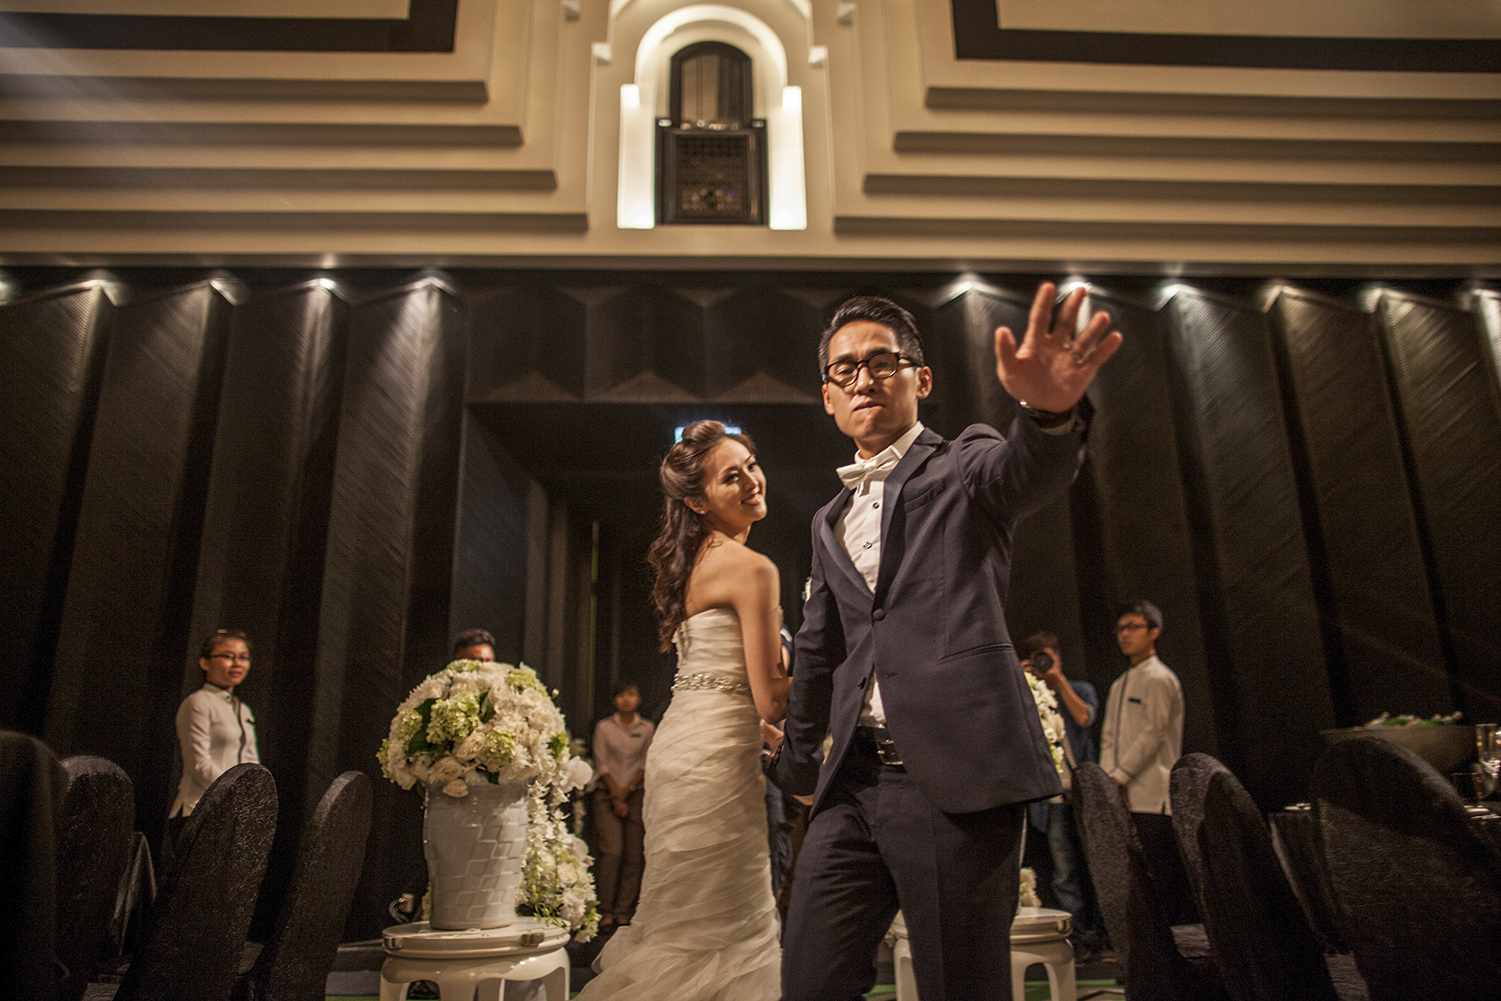 Mott Visuals Wedding Photography Vietnam Hoi An Danang www.mottvisualsweddings.comIntercontinental Sun Peninsula Danang VietnamBest Wedding Photography VietnamJustin Mott and Aaron Joel Santos